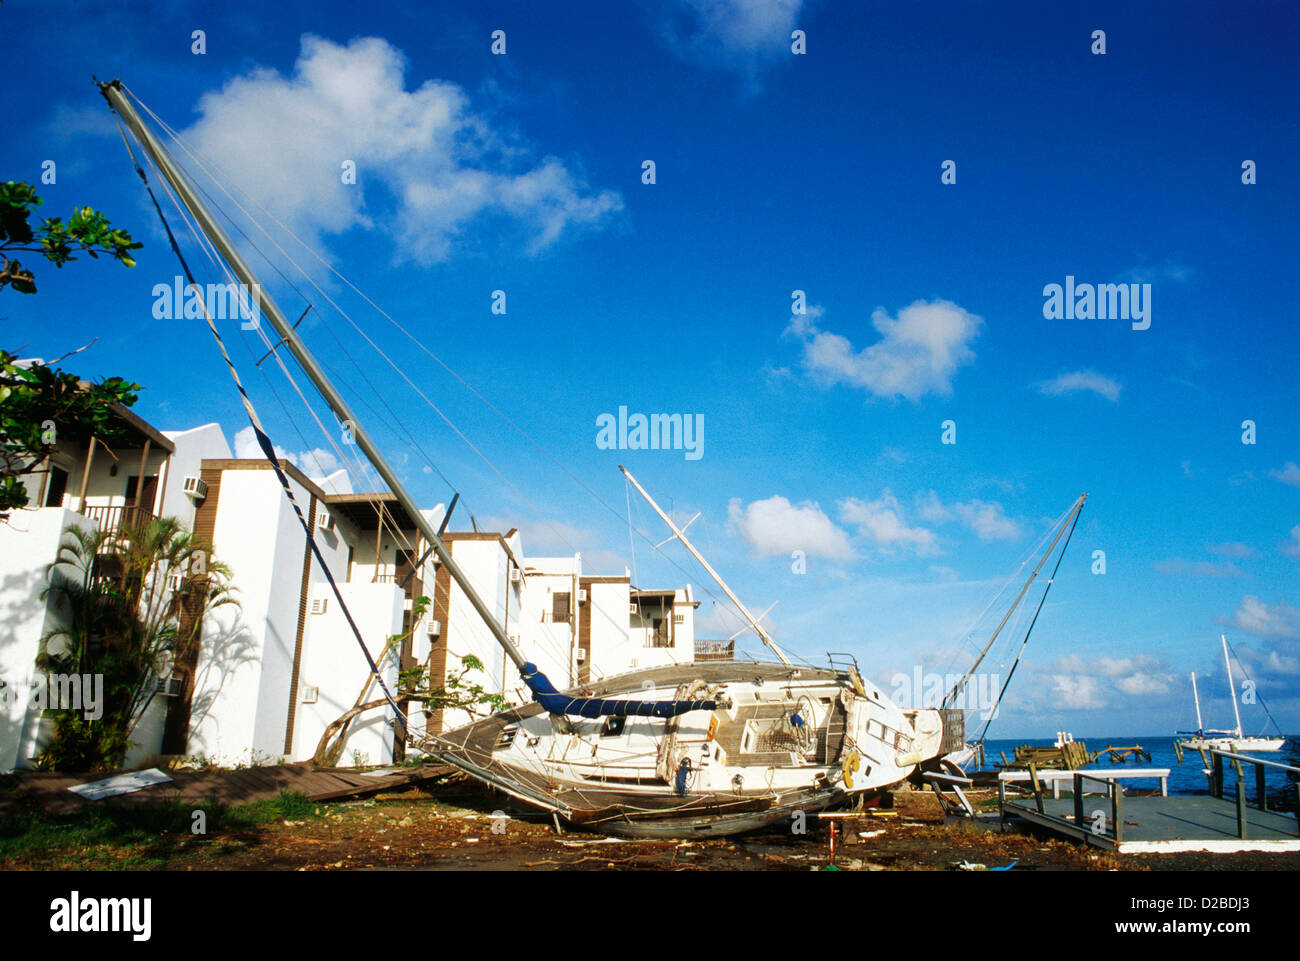 St. Croix, Us Virgin Islands. Damage From Hurricane Marilyn. - Stock Image